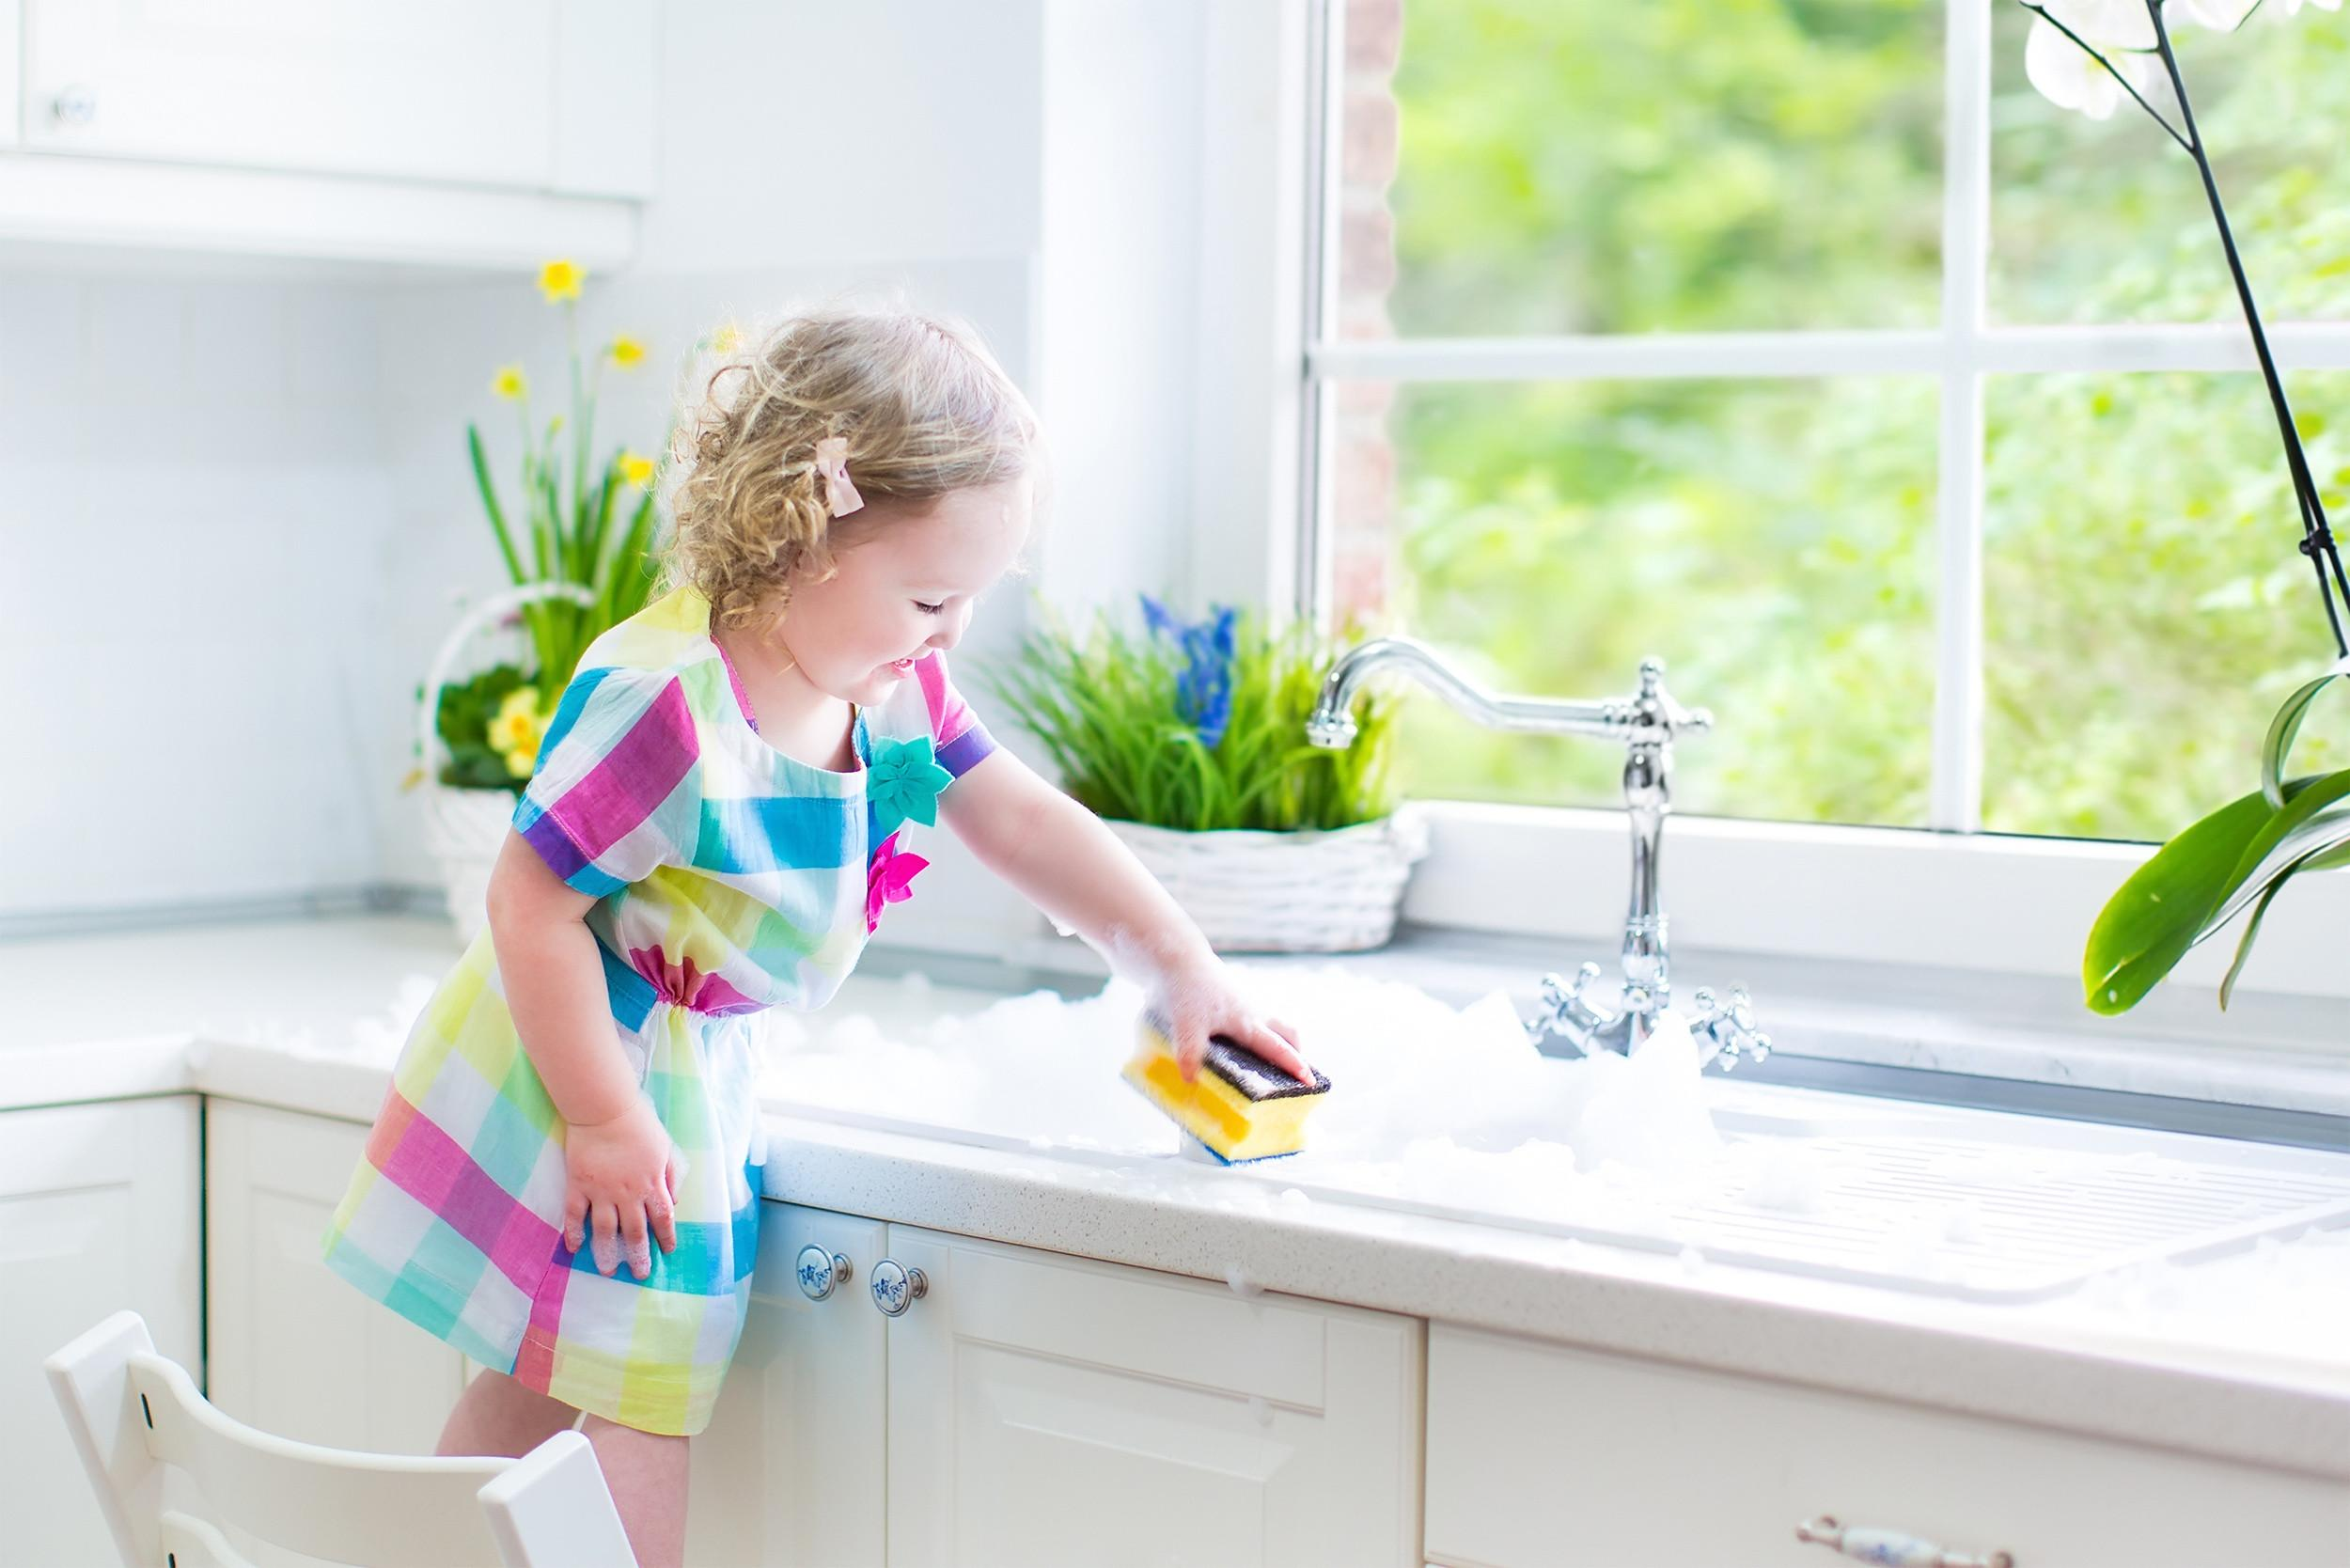 Sweep Home Chicago Commercial Cleaning Services